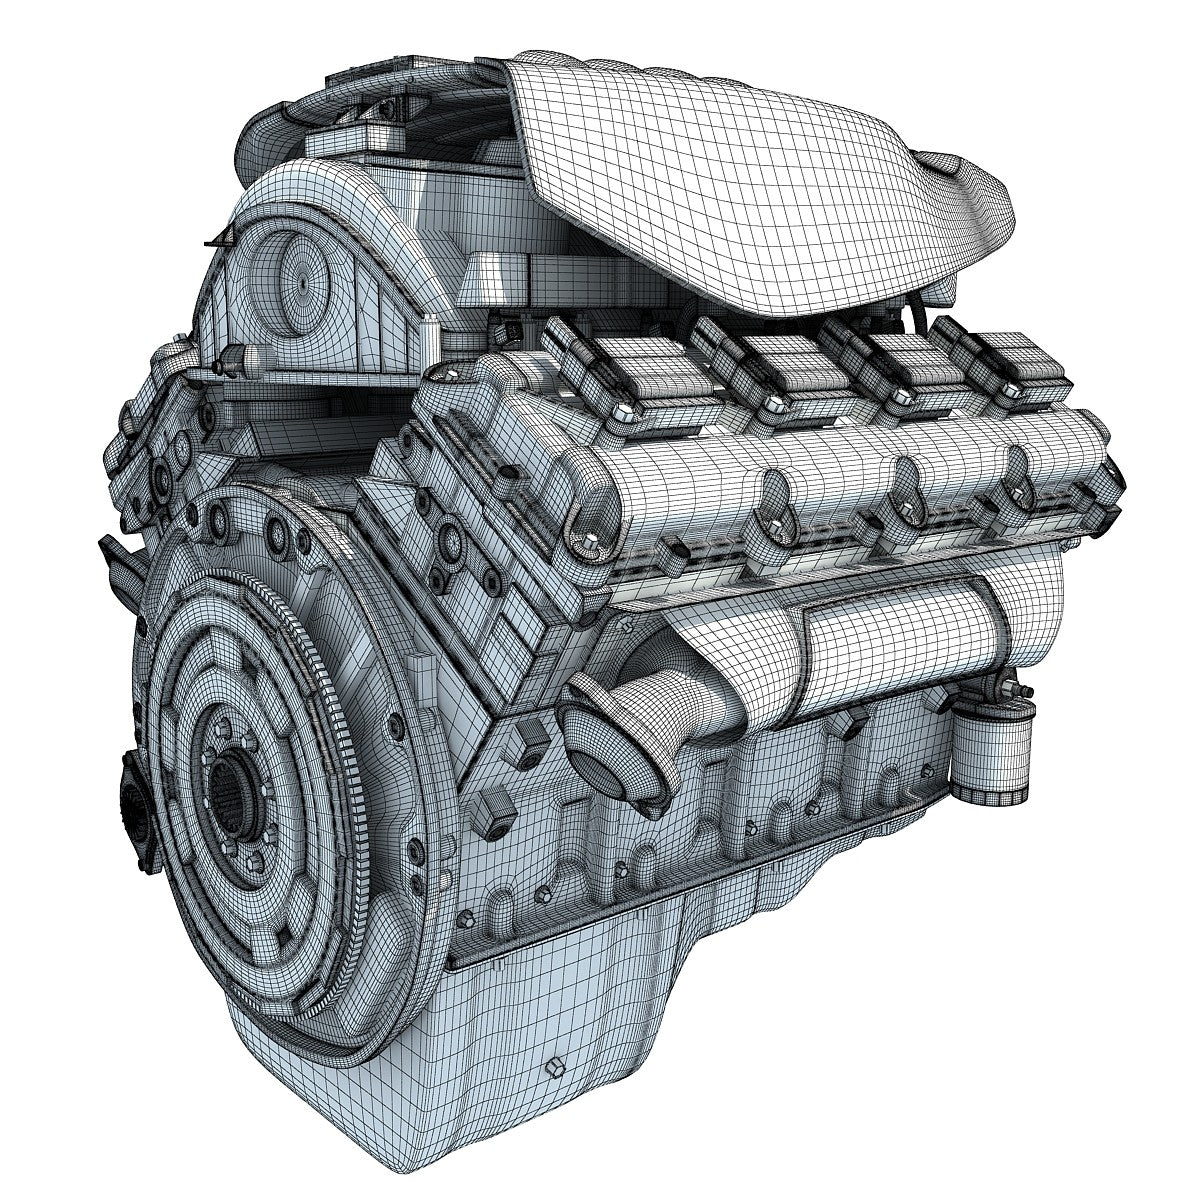 Dodge Ram V8 Engine Model